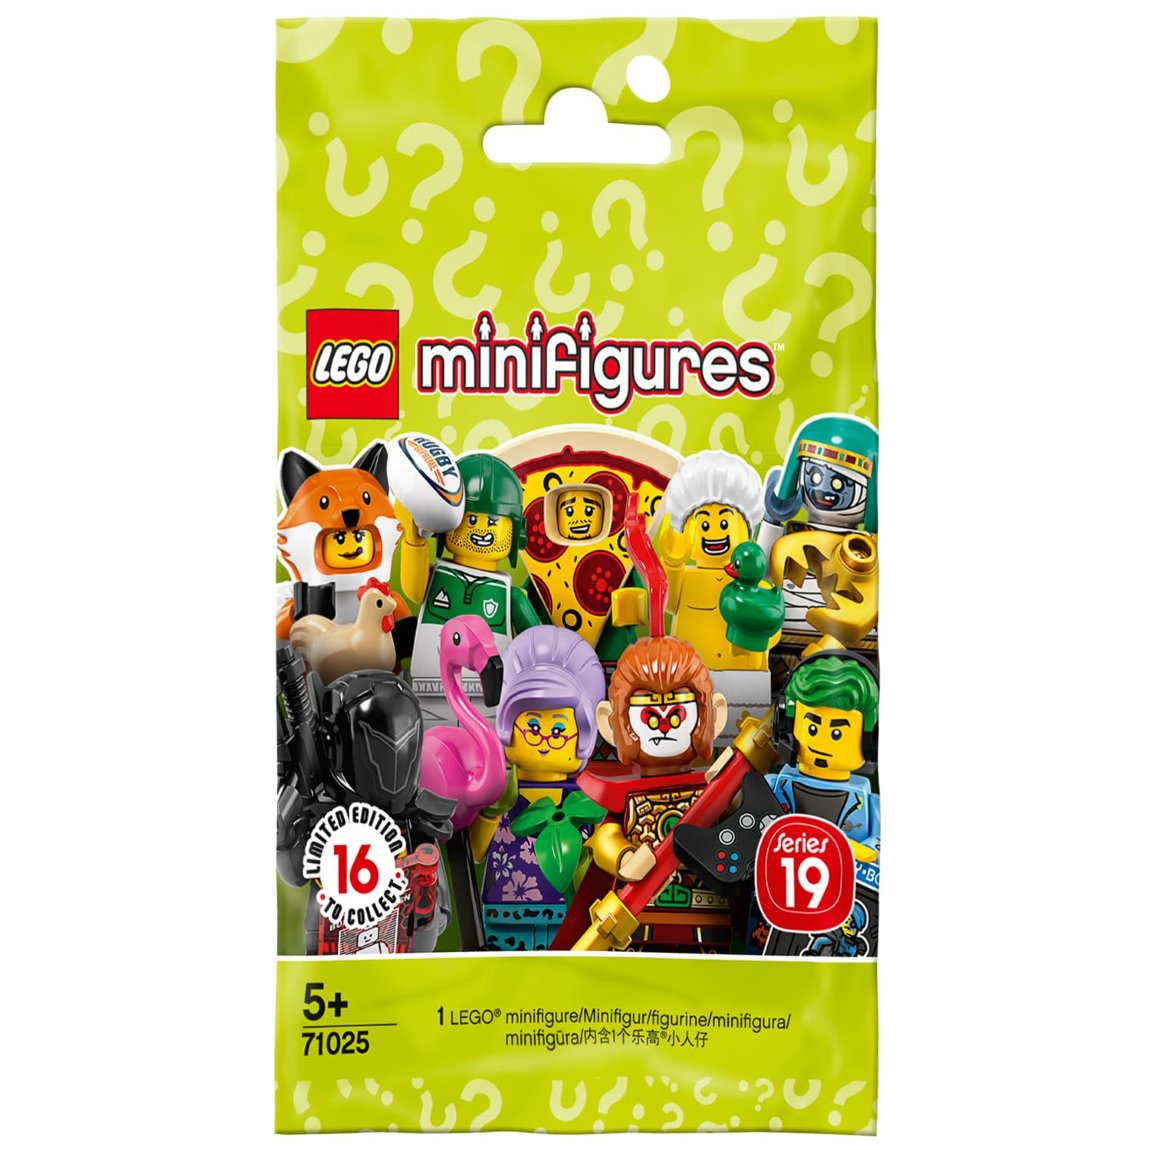 LEGO Minifigures Series 19 From B&M Toys